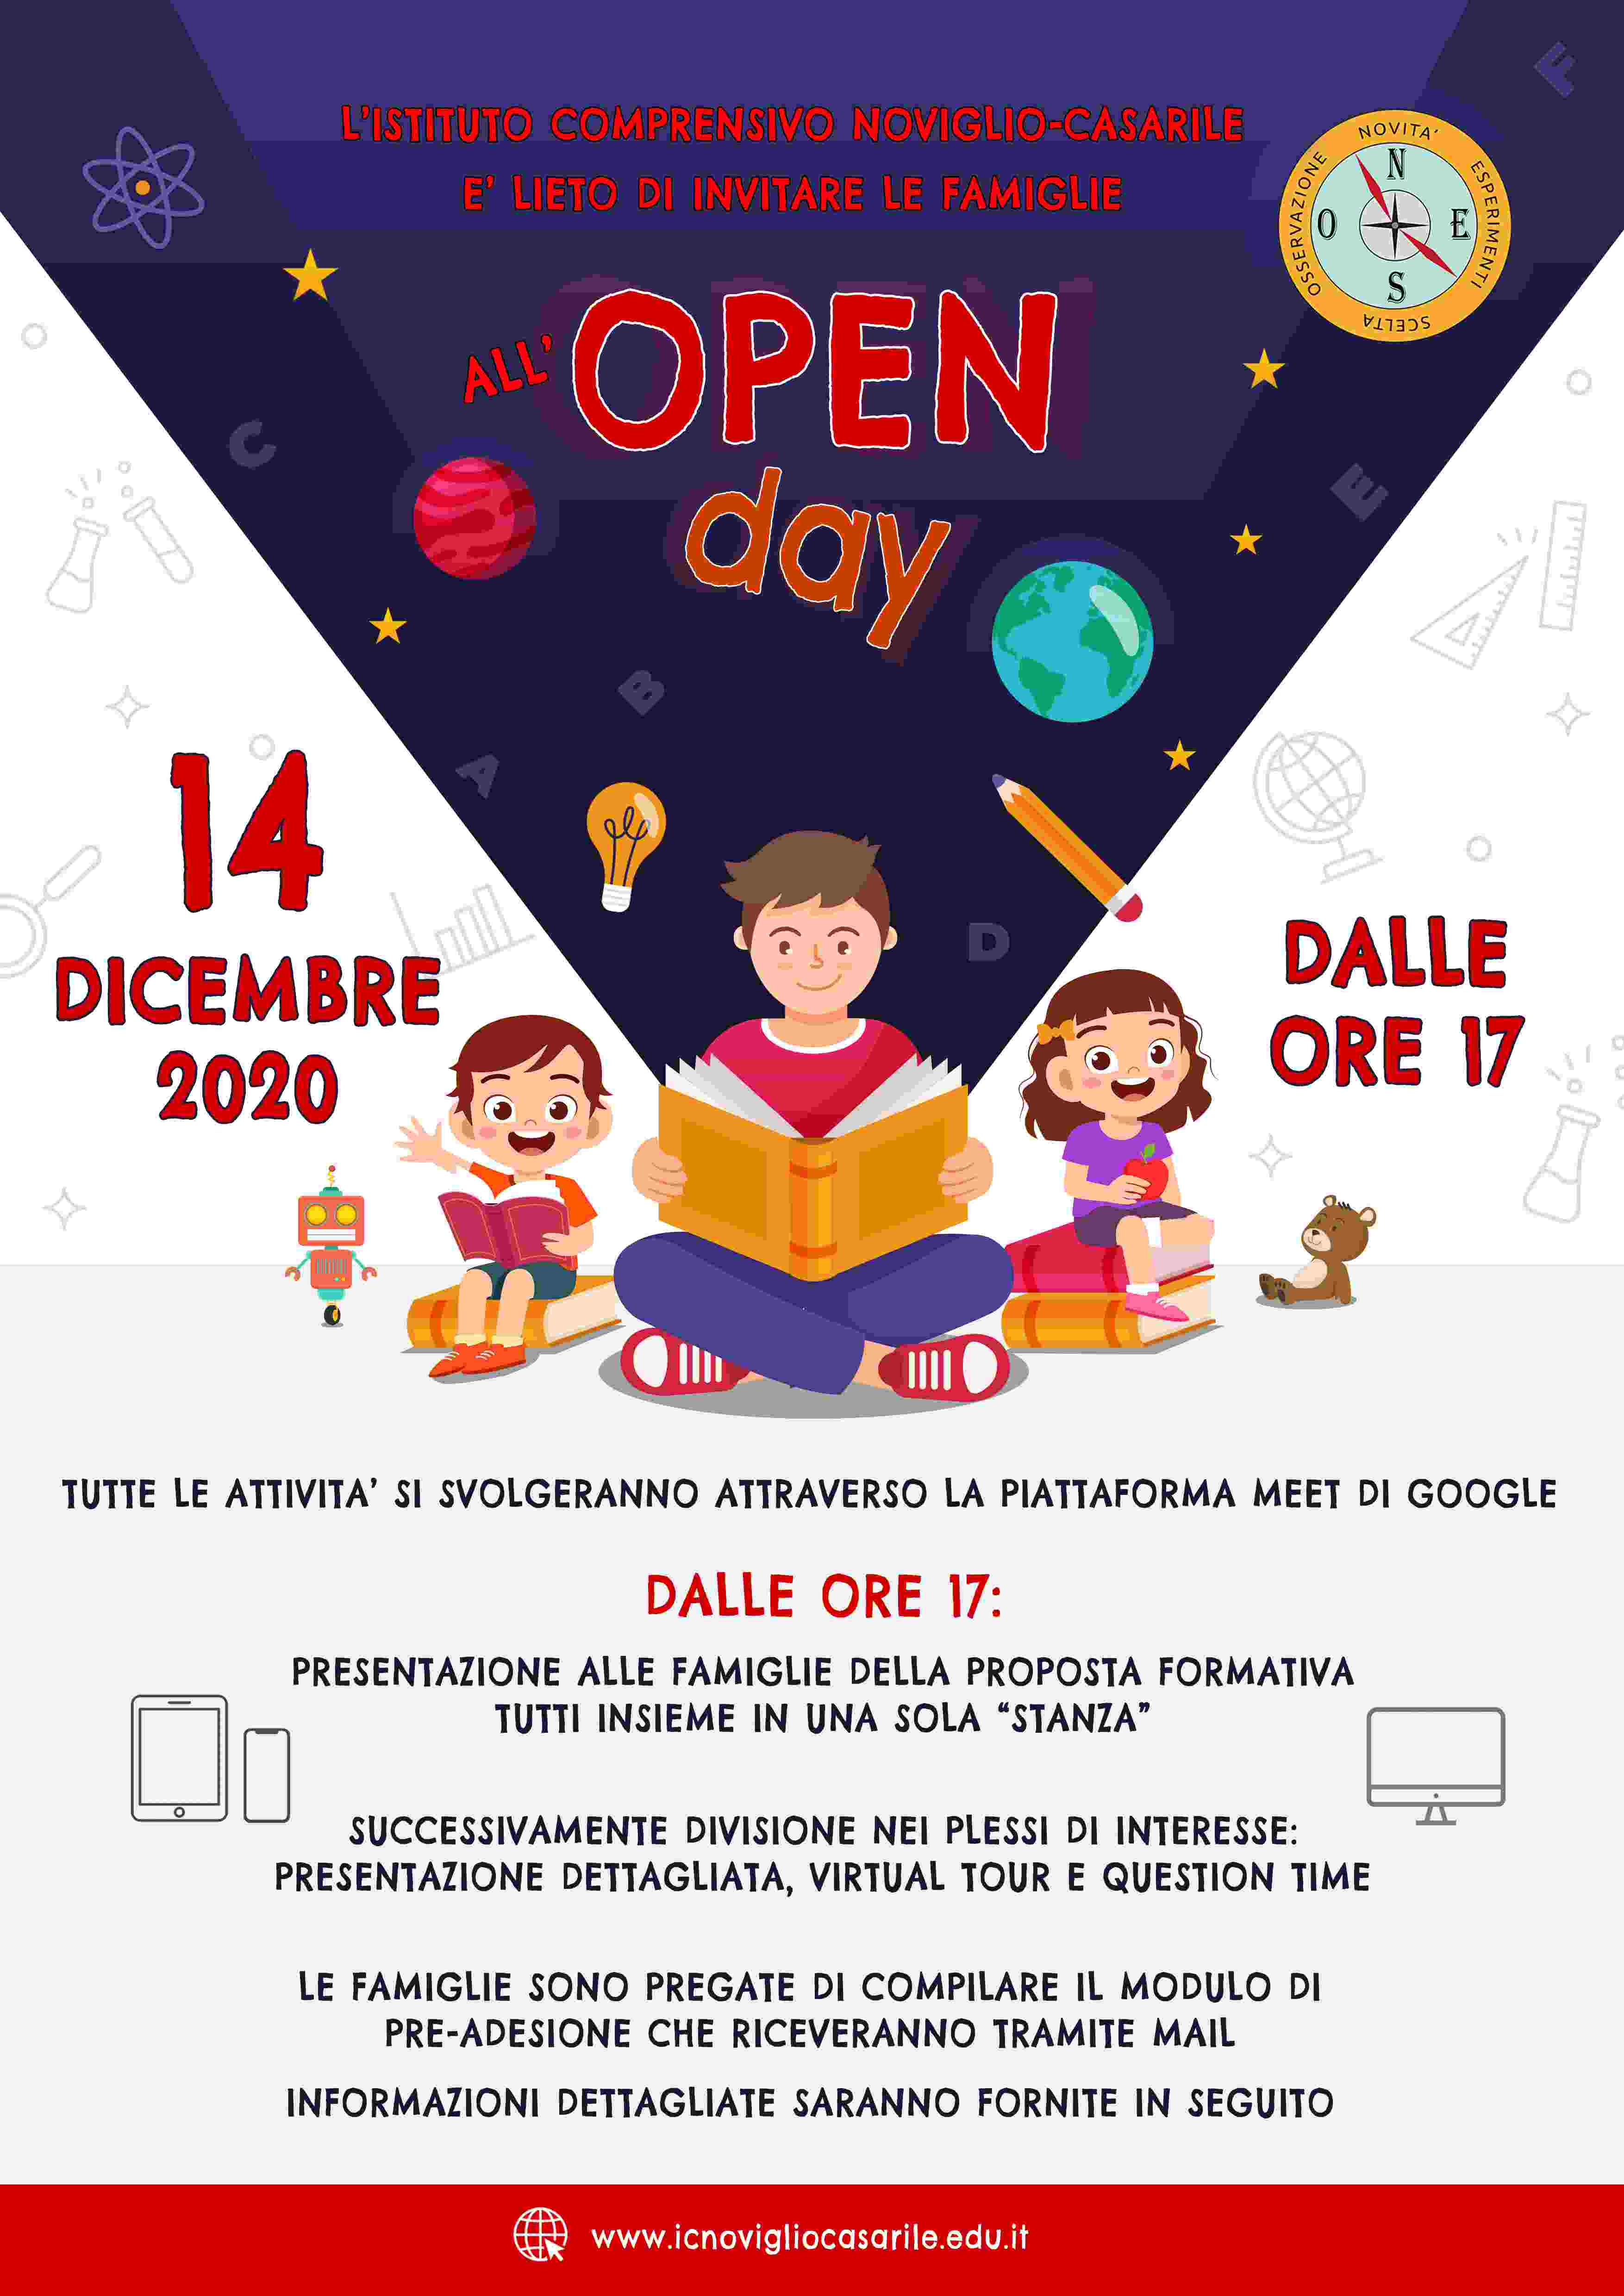 OPEN DAY compressed